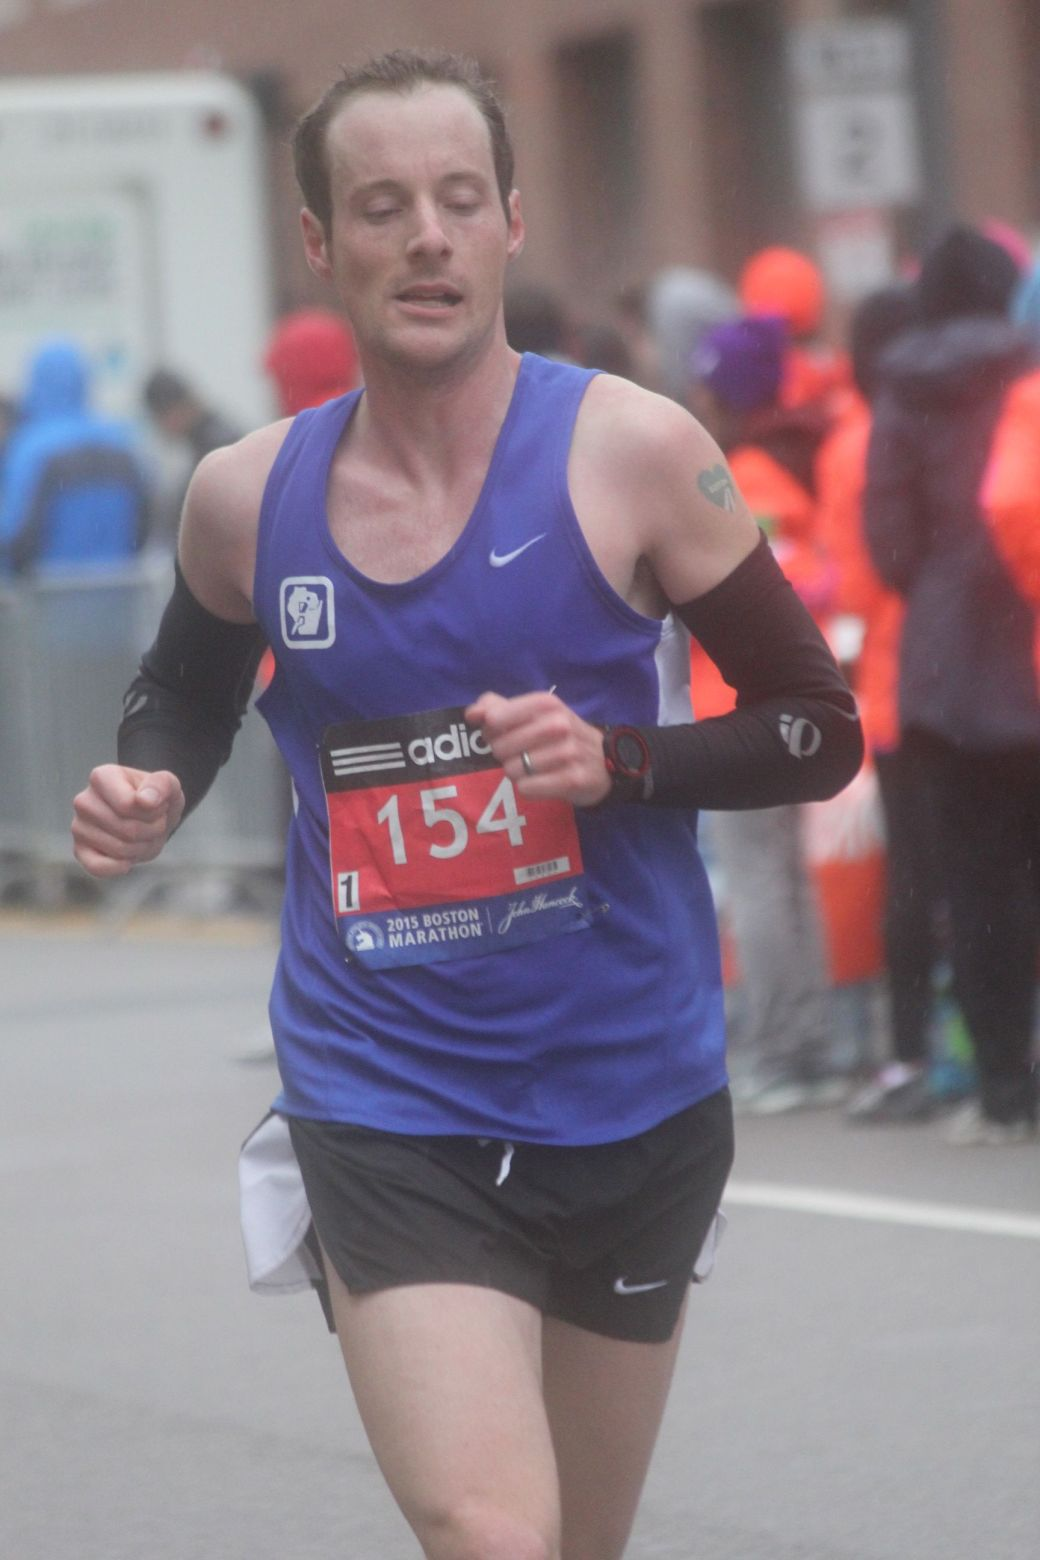 boston marathon april 20 2015 racer number 154